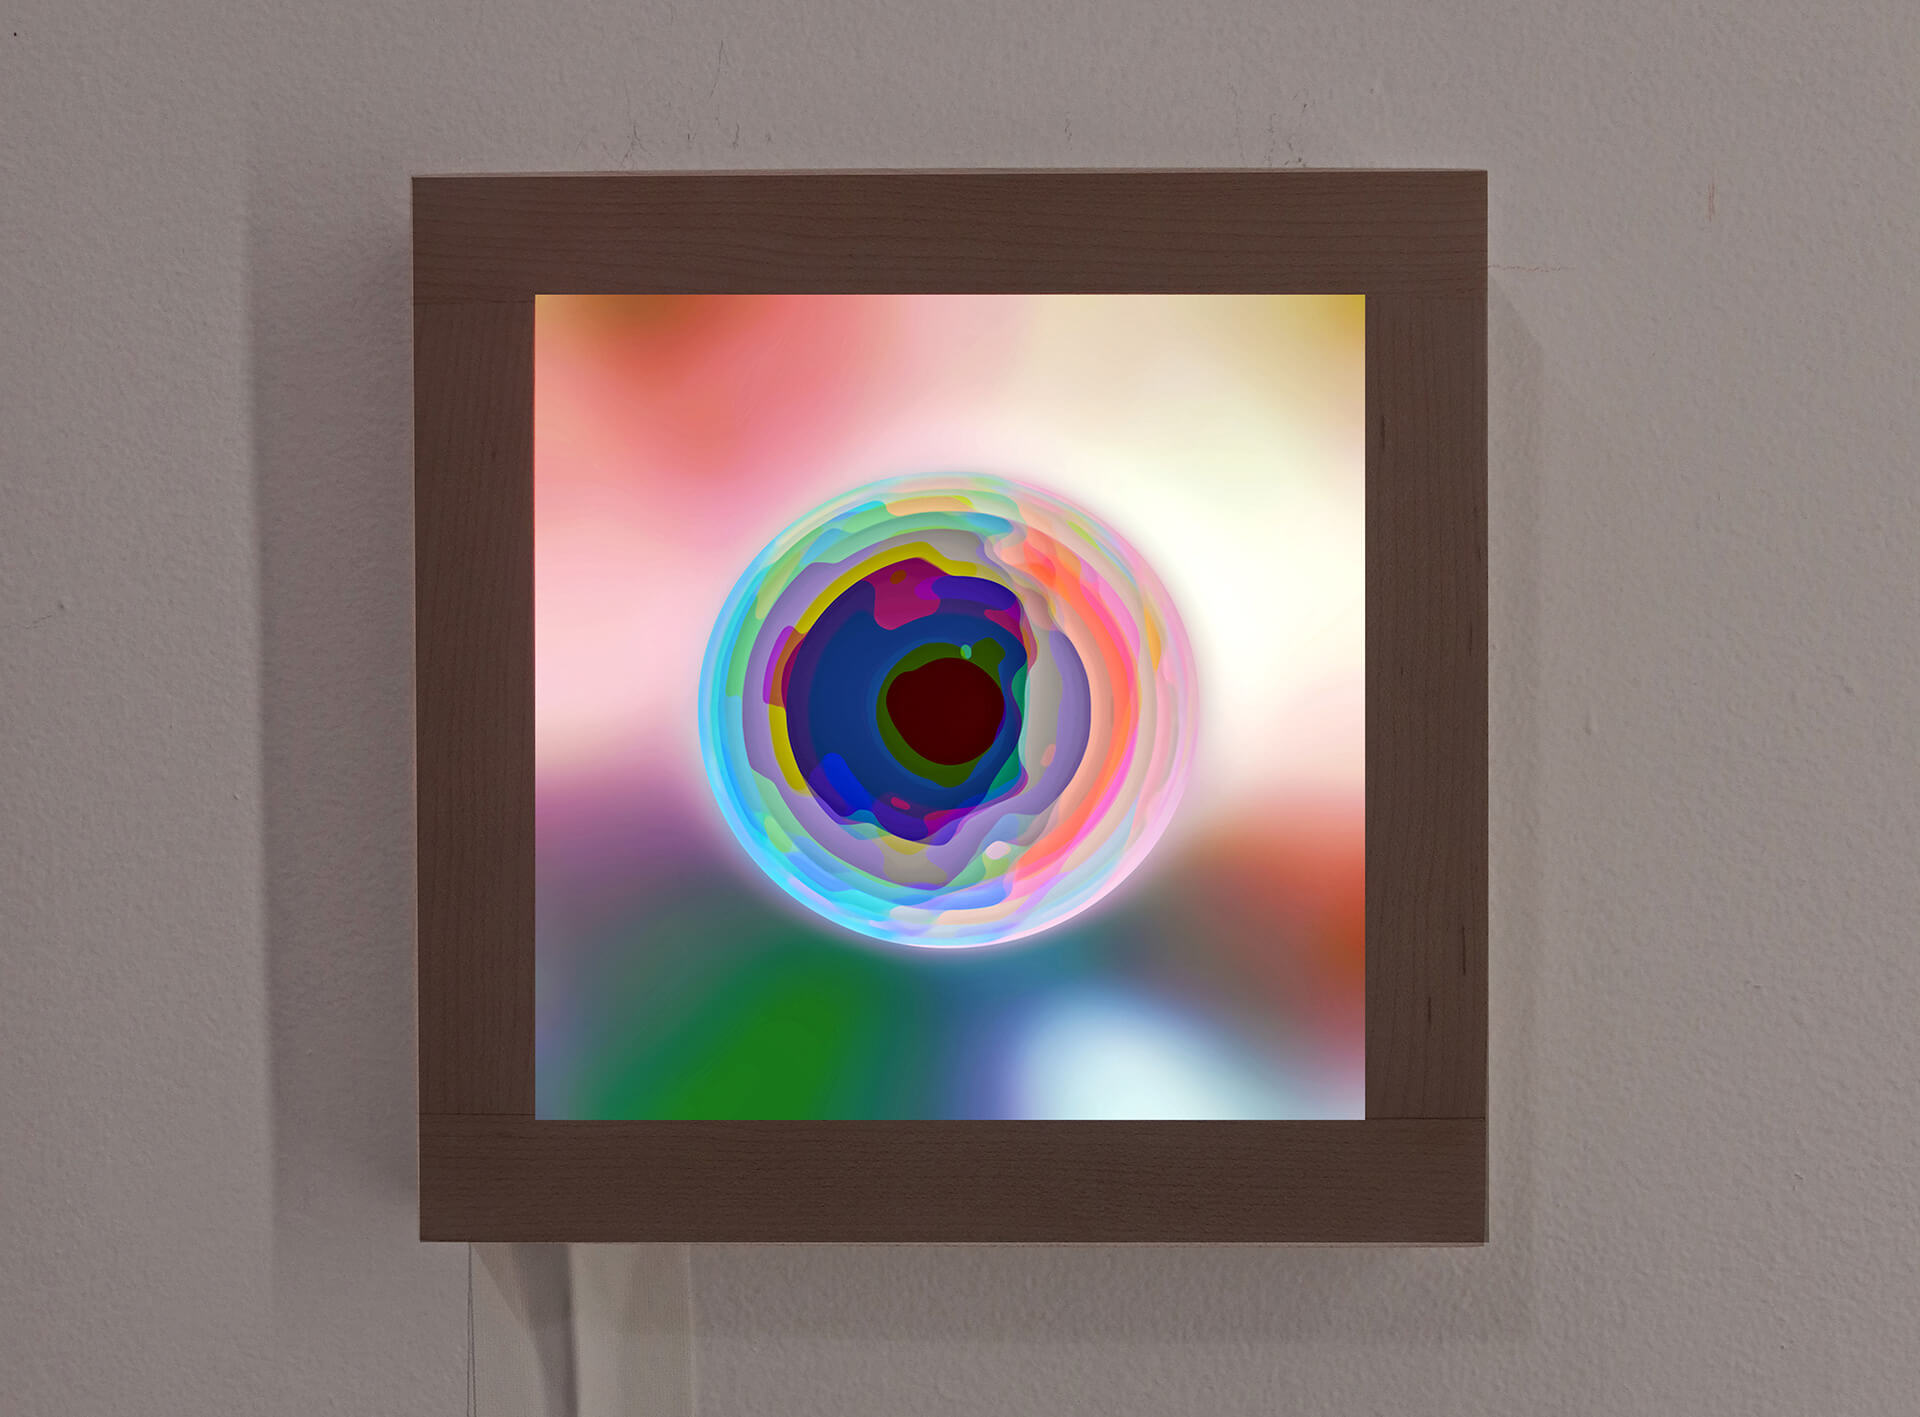 'Electron' (2018) made with Archival Ink on Archival Epson Translucent on a handmade maple lightbox frame | Light Minded | Cate Woodruff | STIRworld